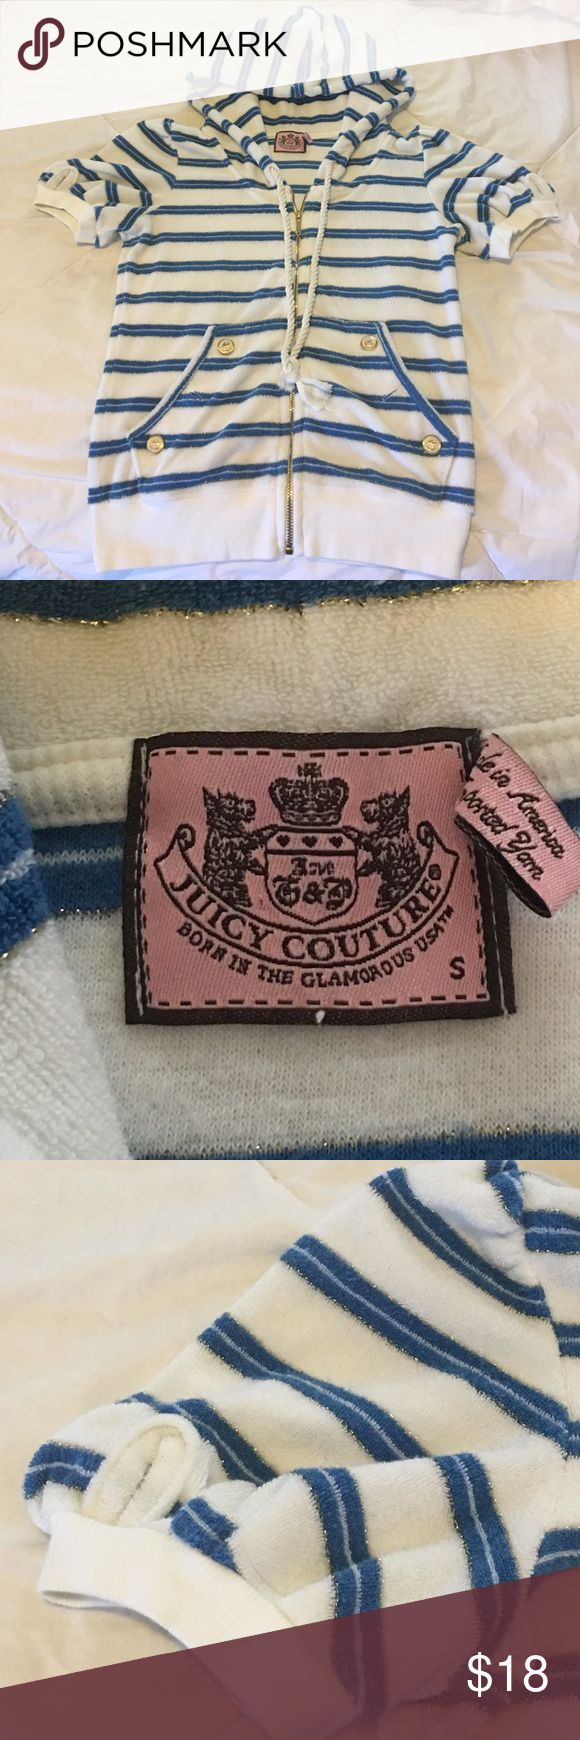 Women's S Original Juicy Couture Nautical zip top Women's S Original Juicy Couture (not what's sold in Kohl's) Nautical look, zip up hoodie. Fabulous casual top with gold thread, zipper, & button accents. This has pockets in the front. This top looks amazing with white bottoms and tan skin. Only selling because it no longer fits. Only worn 3-4 times. Juicy Couture Tops